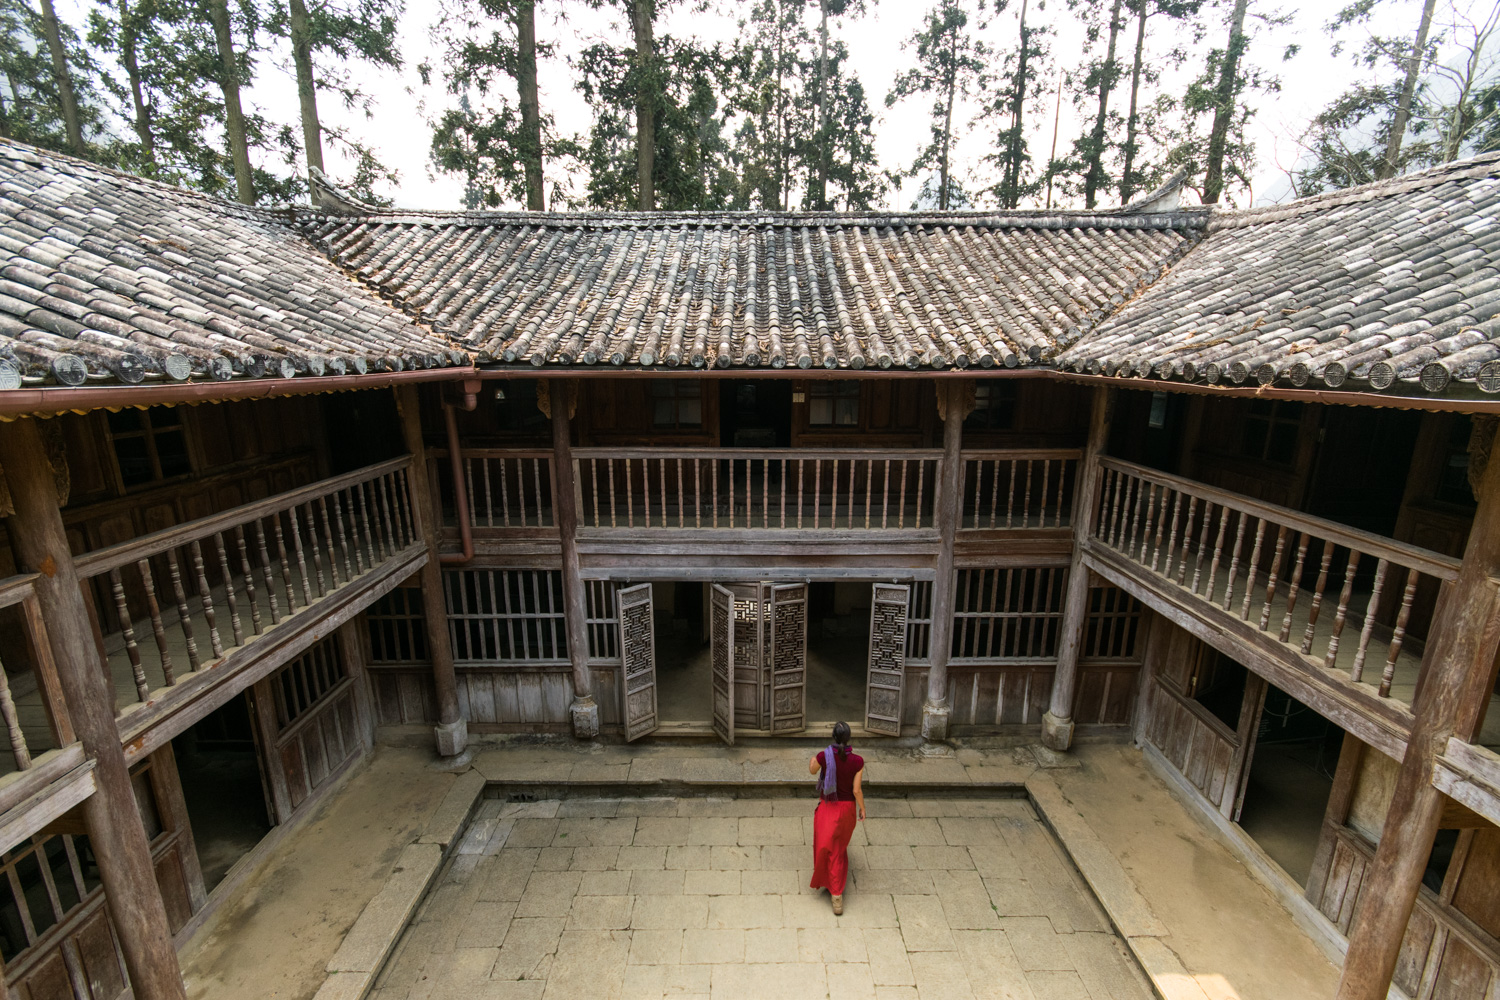 147 - In the palace of the Hmong King, Ha Giang province, north Vietnam